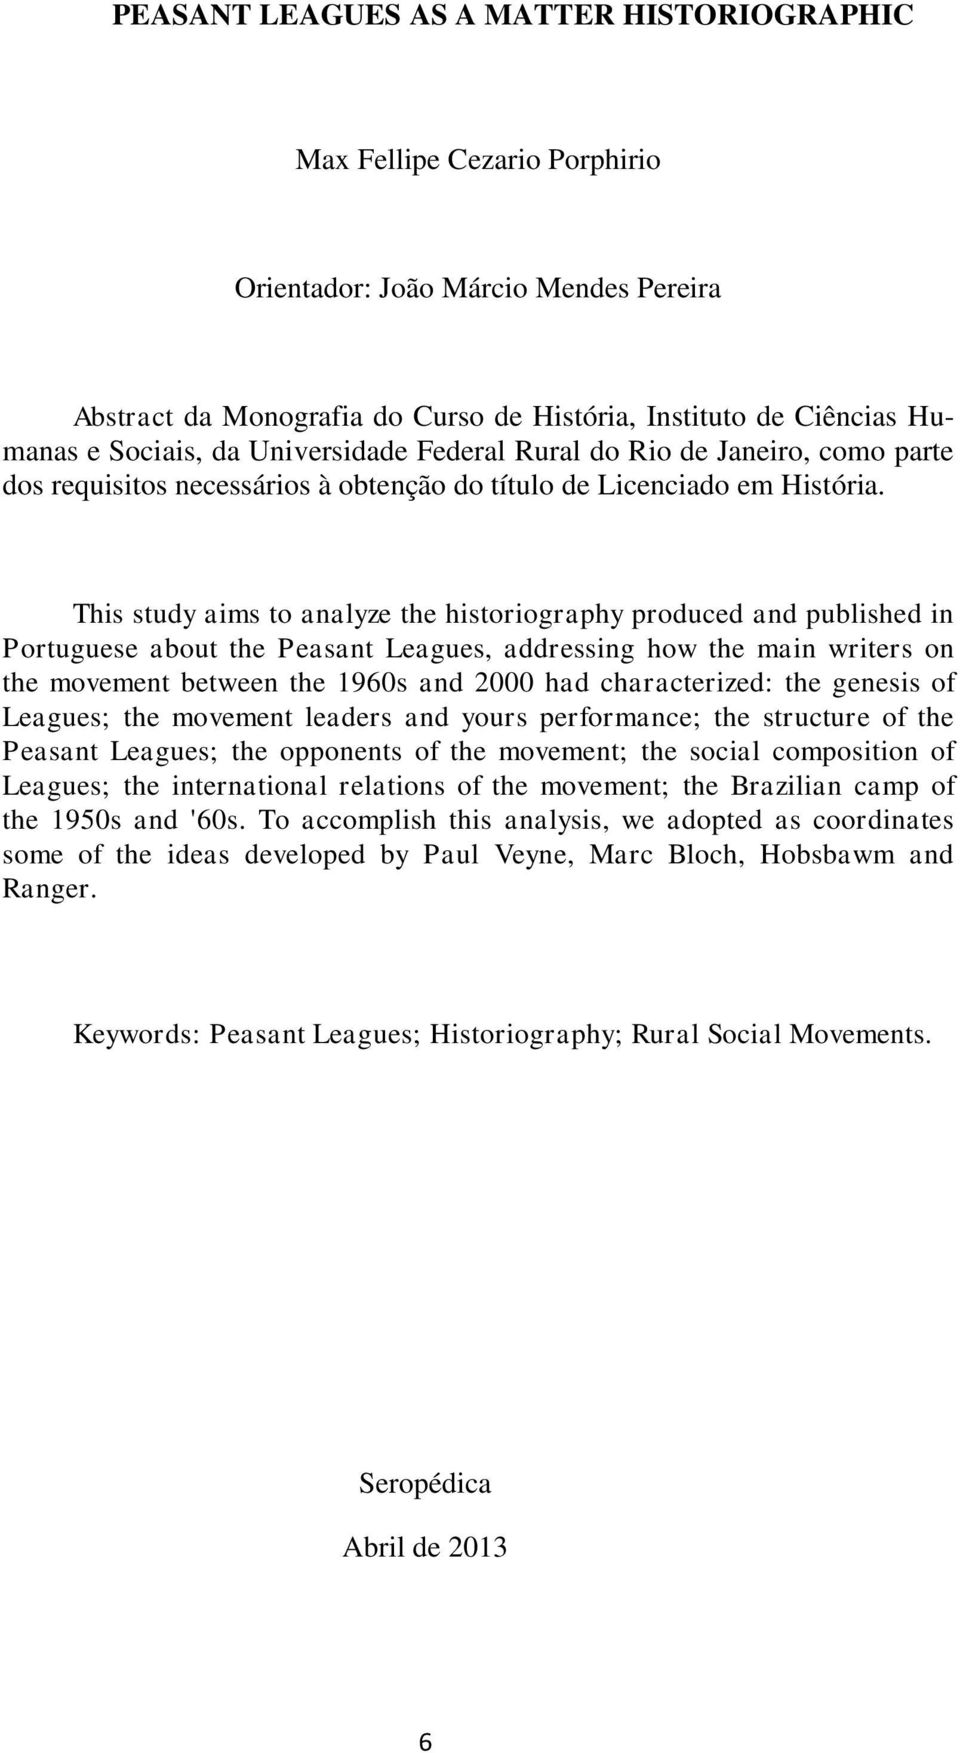 This study aims to analyze the historiography produced and published in Portuguese about the Peasant Leagues, addressing how the main writers on the movement between the 1960s and 2000 had